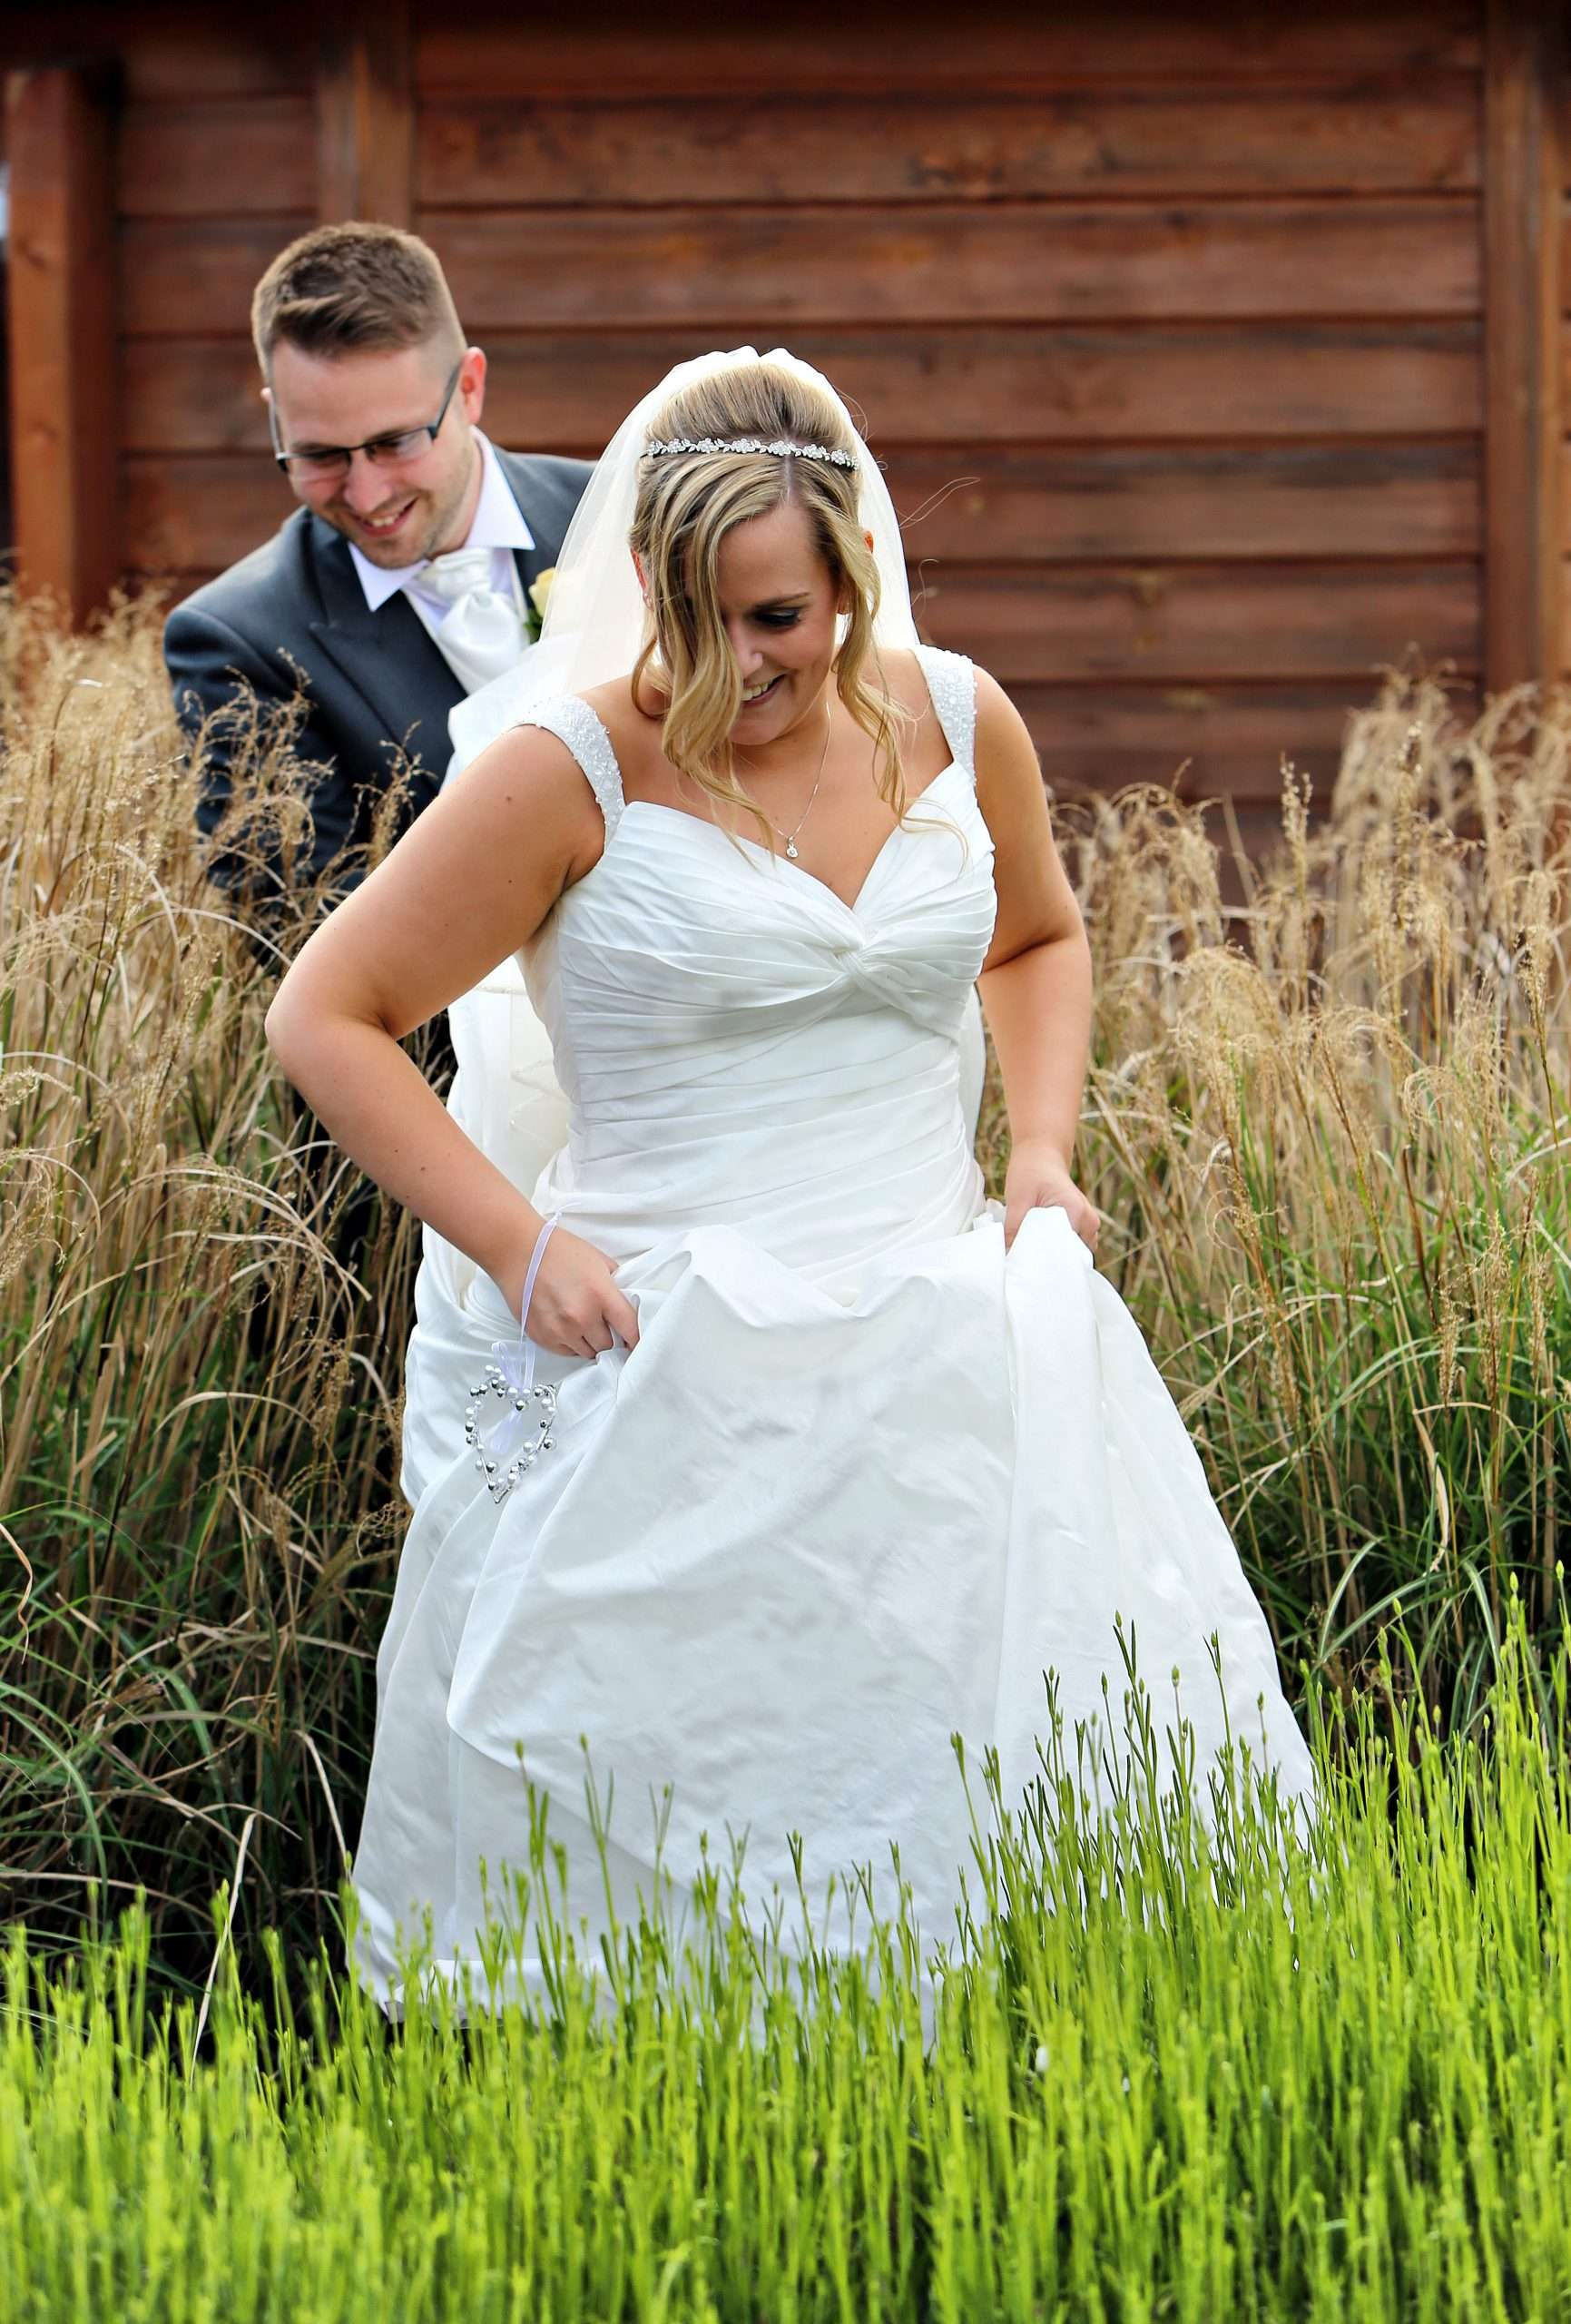 Lisa and Darren are in their wedding clothes. They are walking through tall grass